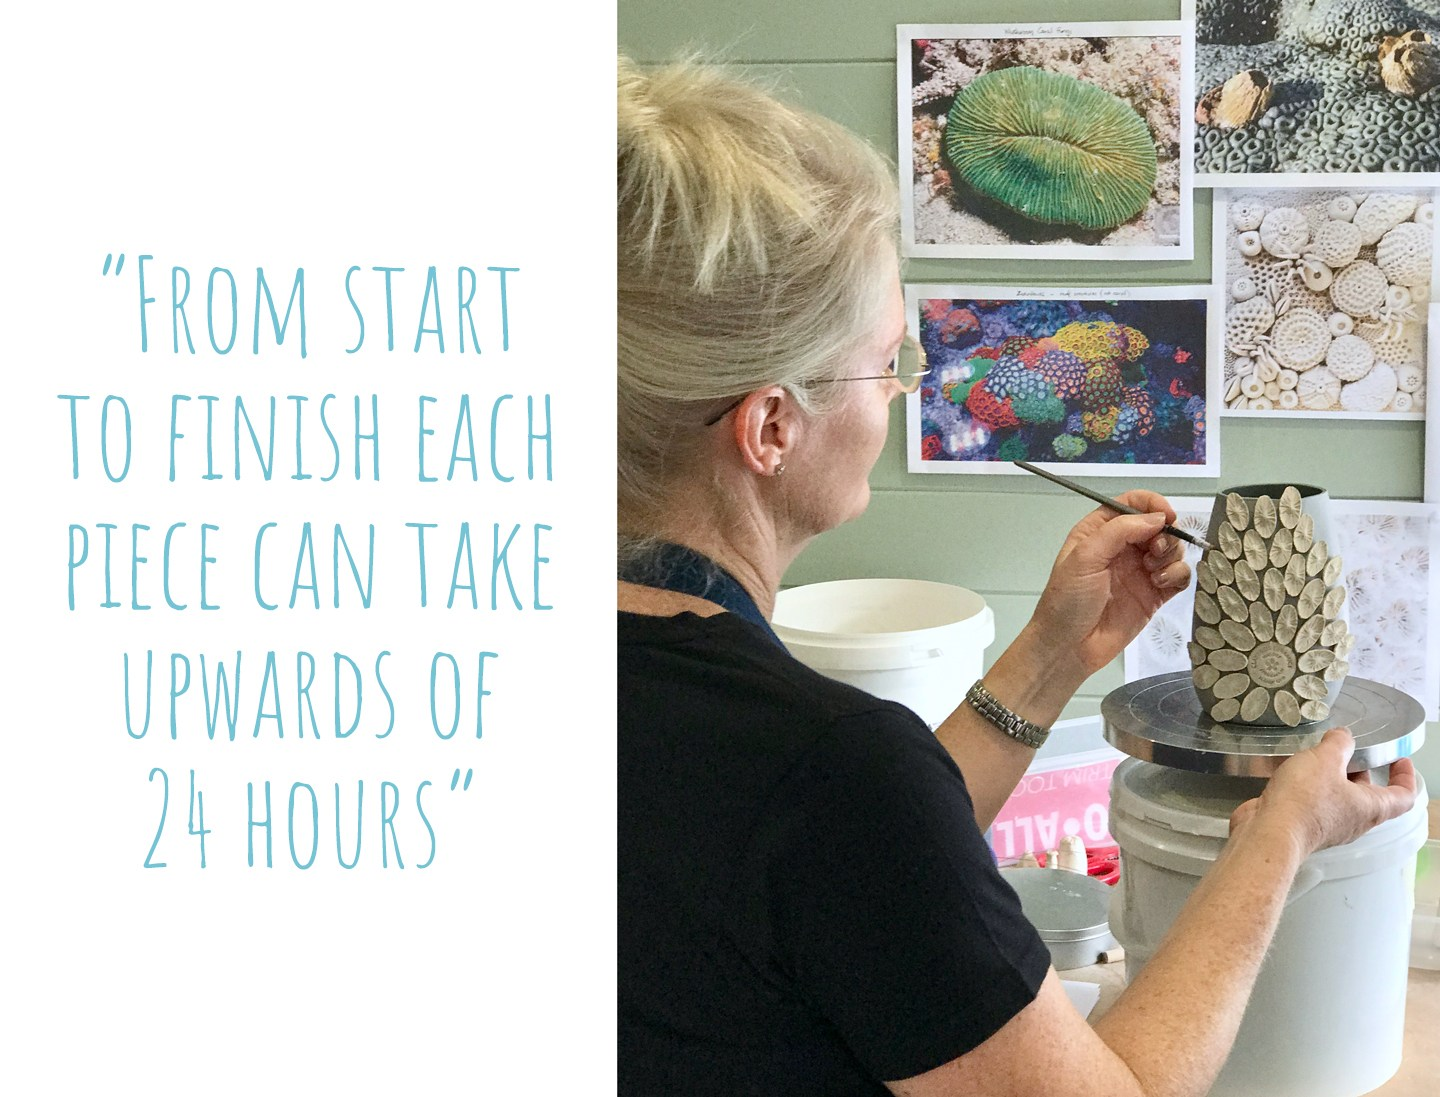 Nicole adding decorative touches to another ceramic vase in her home studio; 'From start to finish each piece can take upwards of 24 hours'